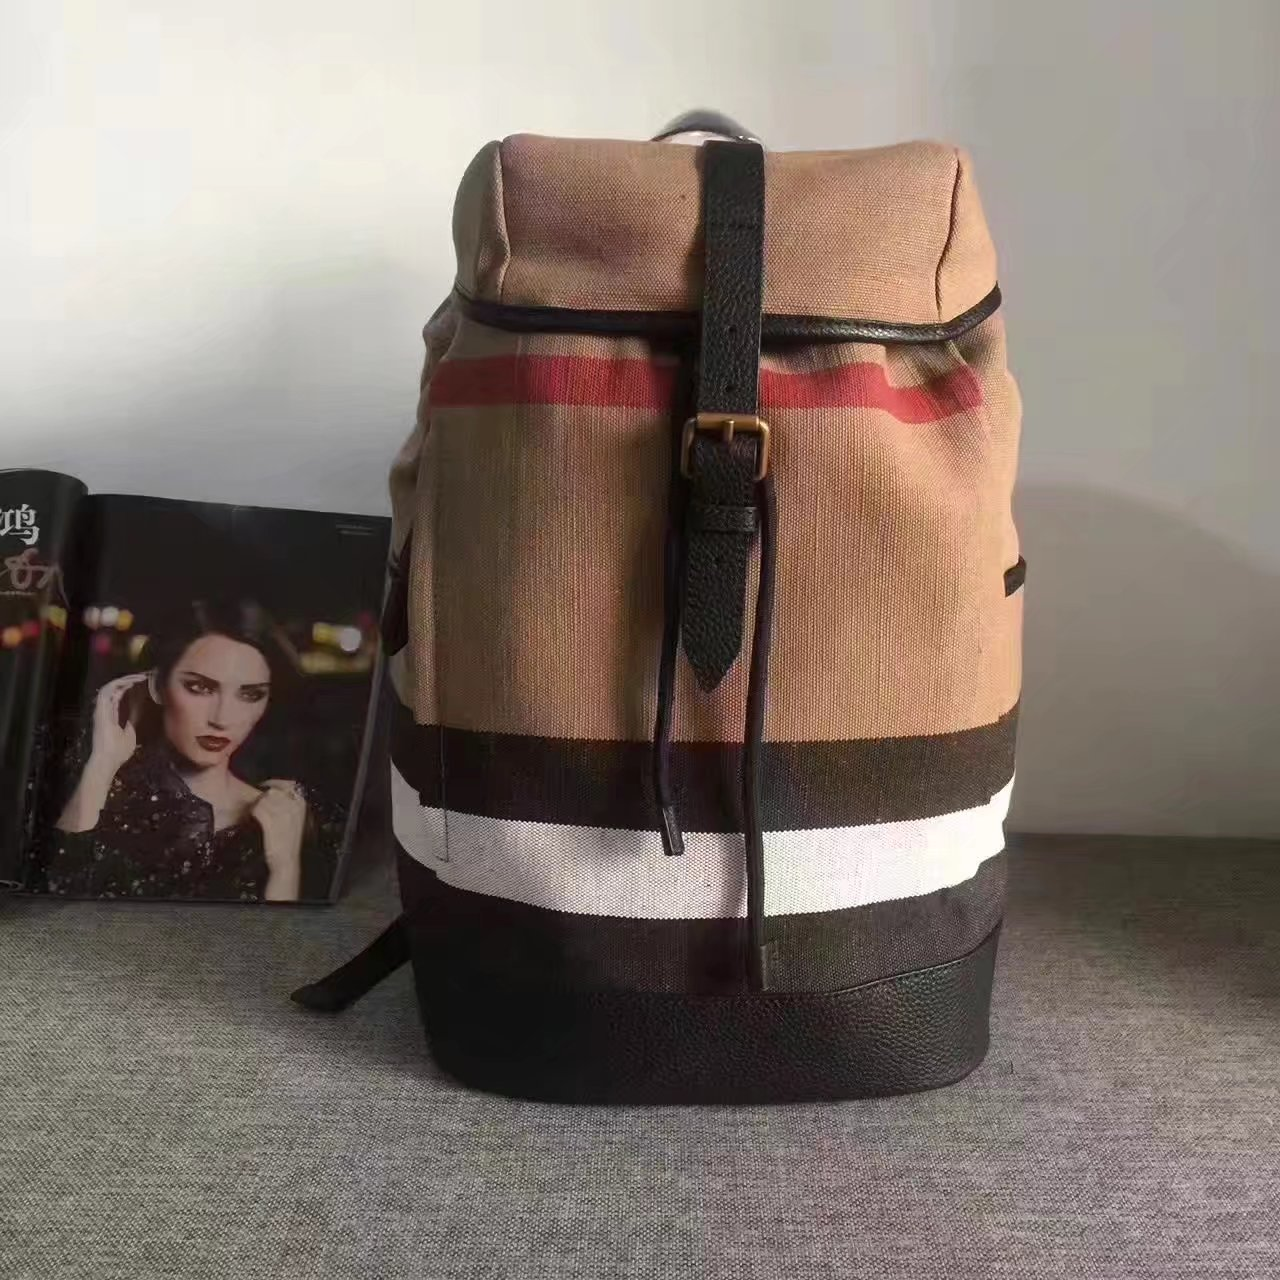 Buberry 2017 Backpack in Canvas Check and Leather